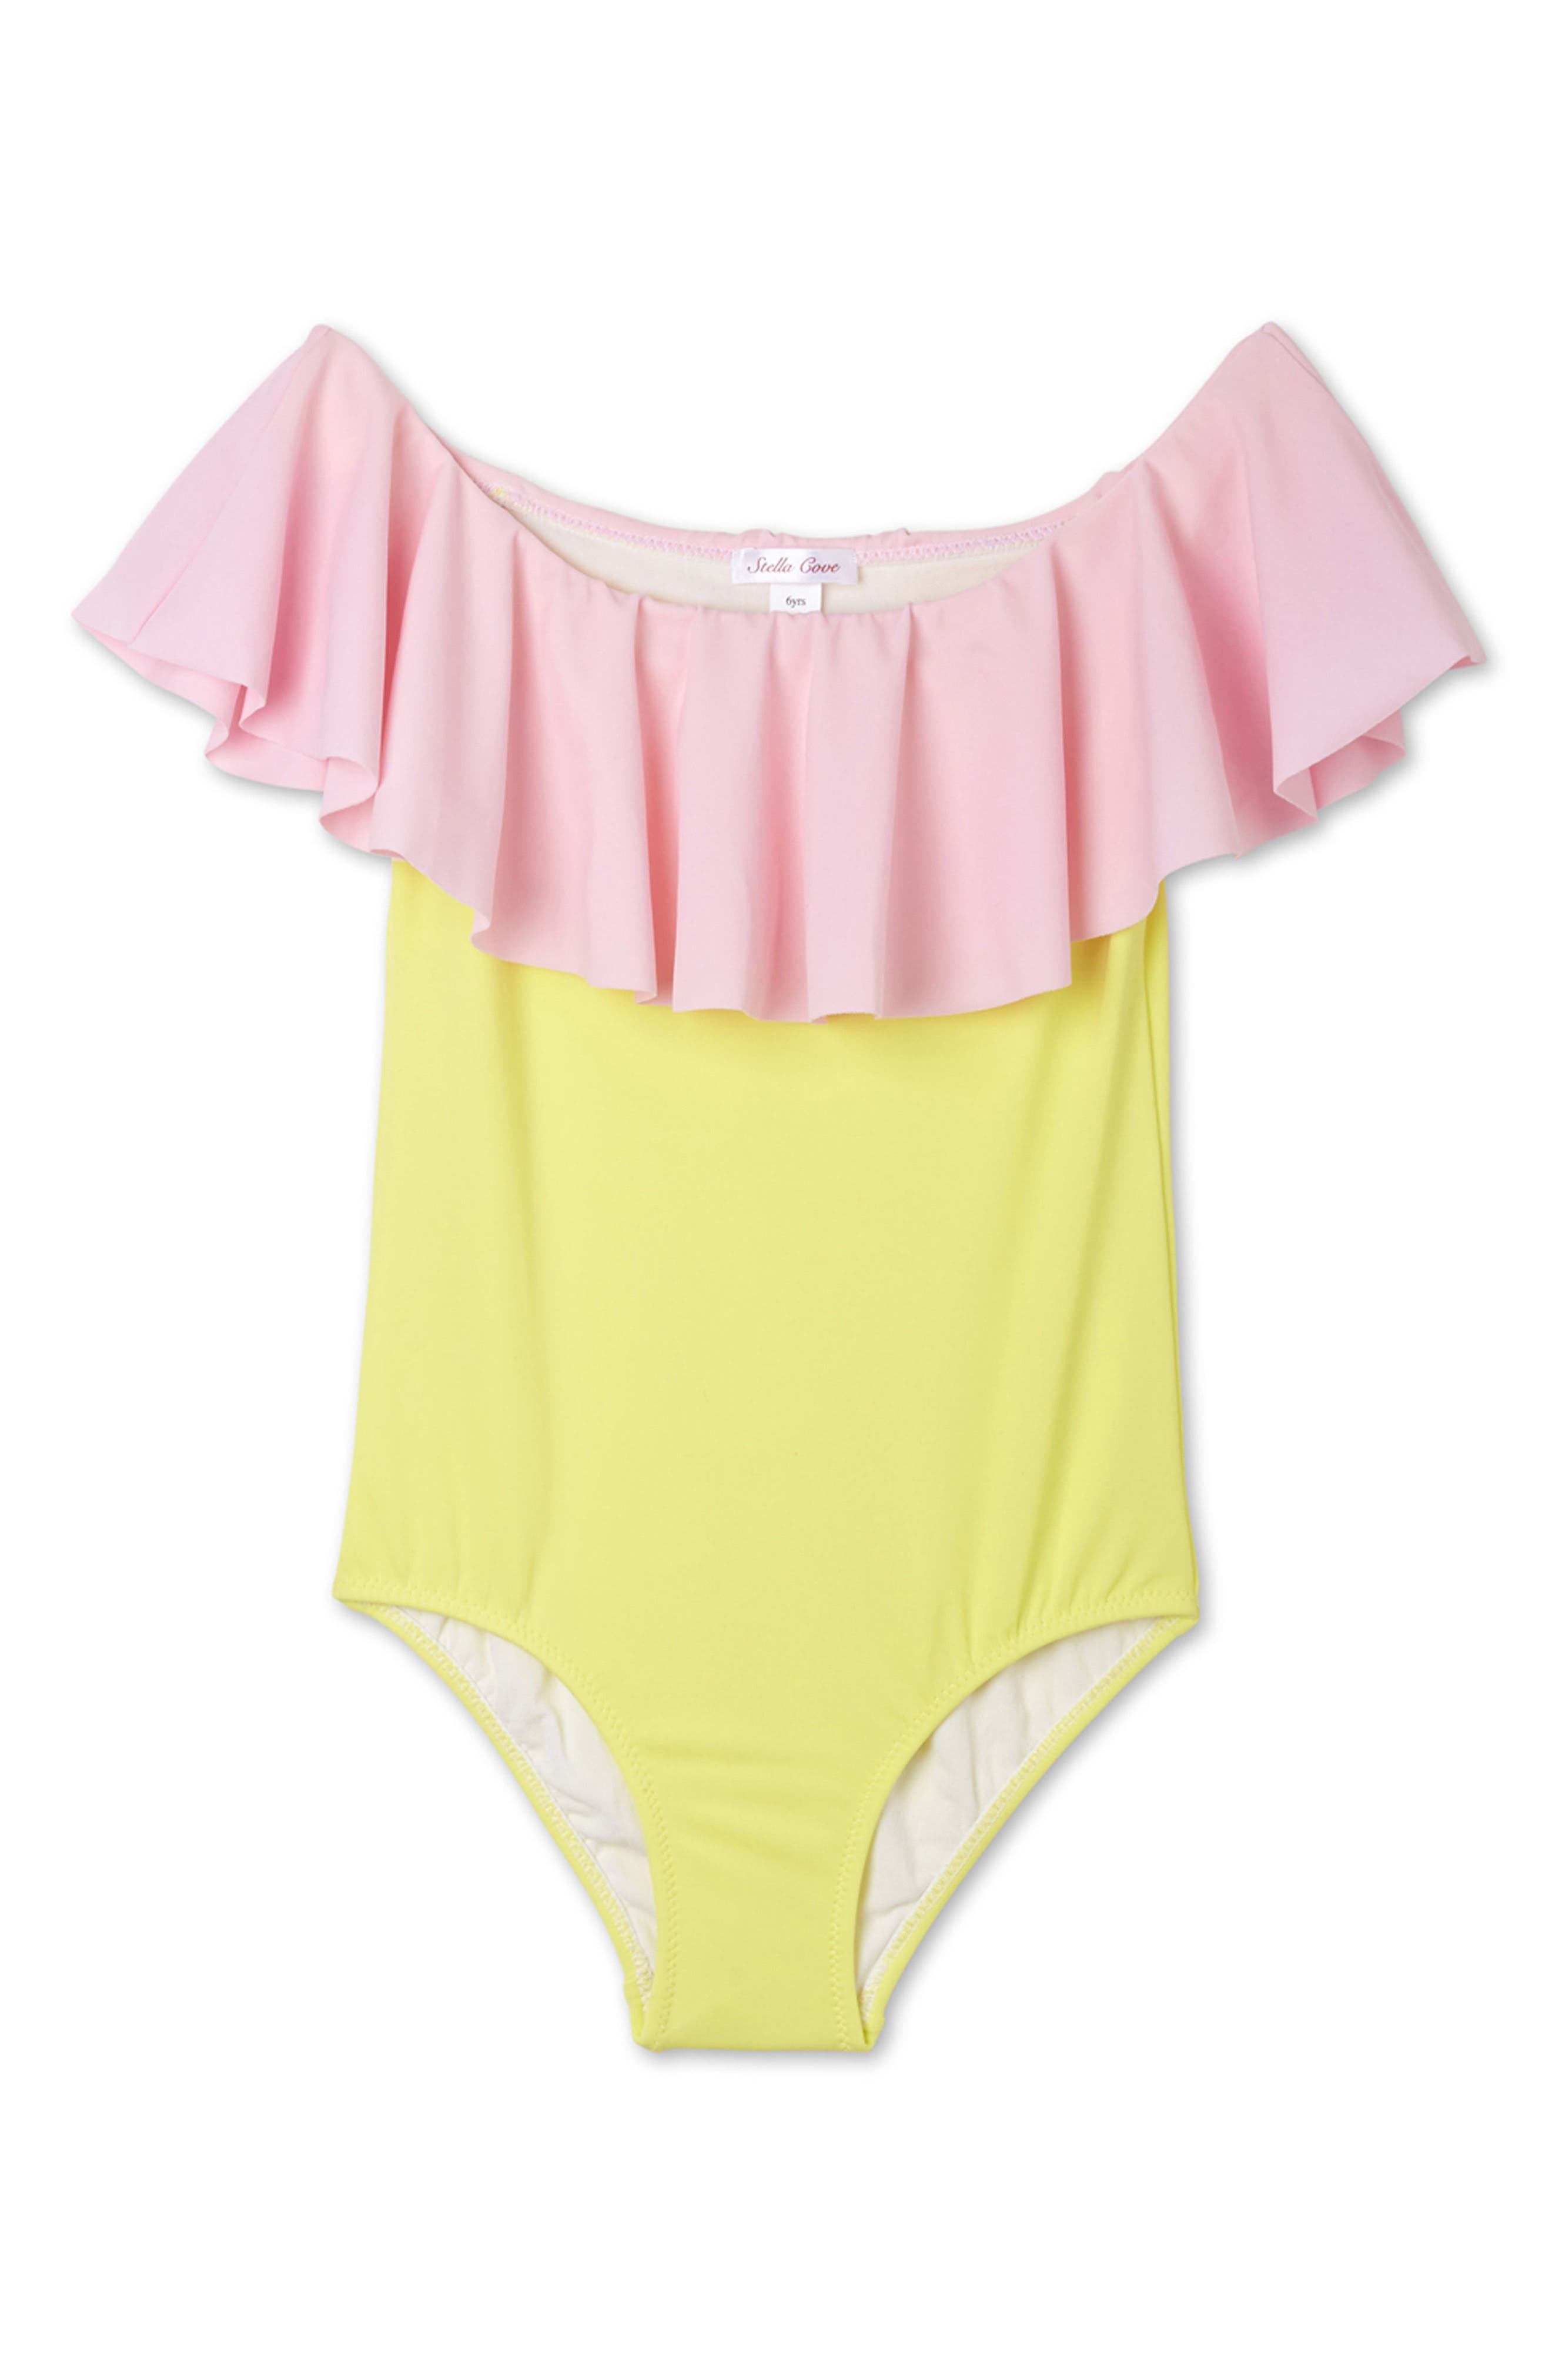 Alternate Image 1 Selected - Stella Cove Ruffle One-Piece Swimsuit (Toddler Girls & Little Girls)